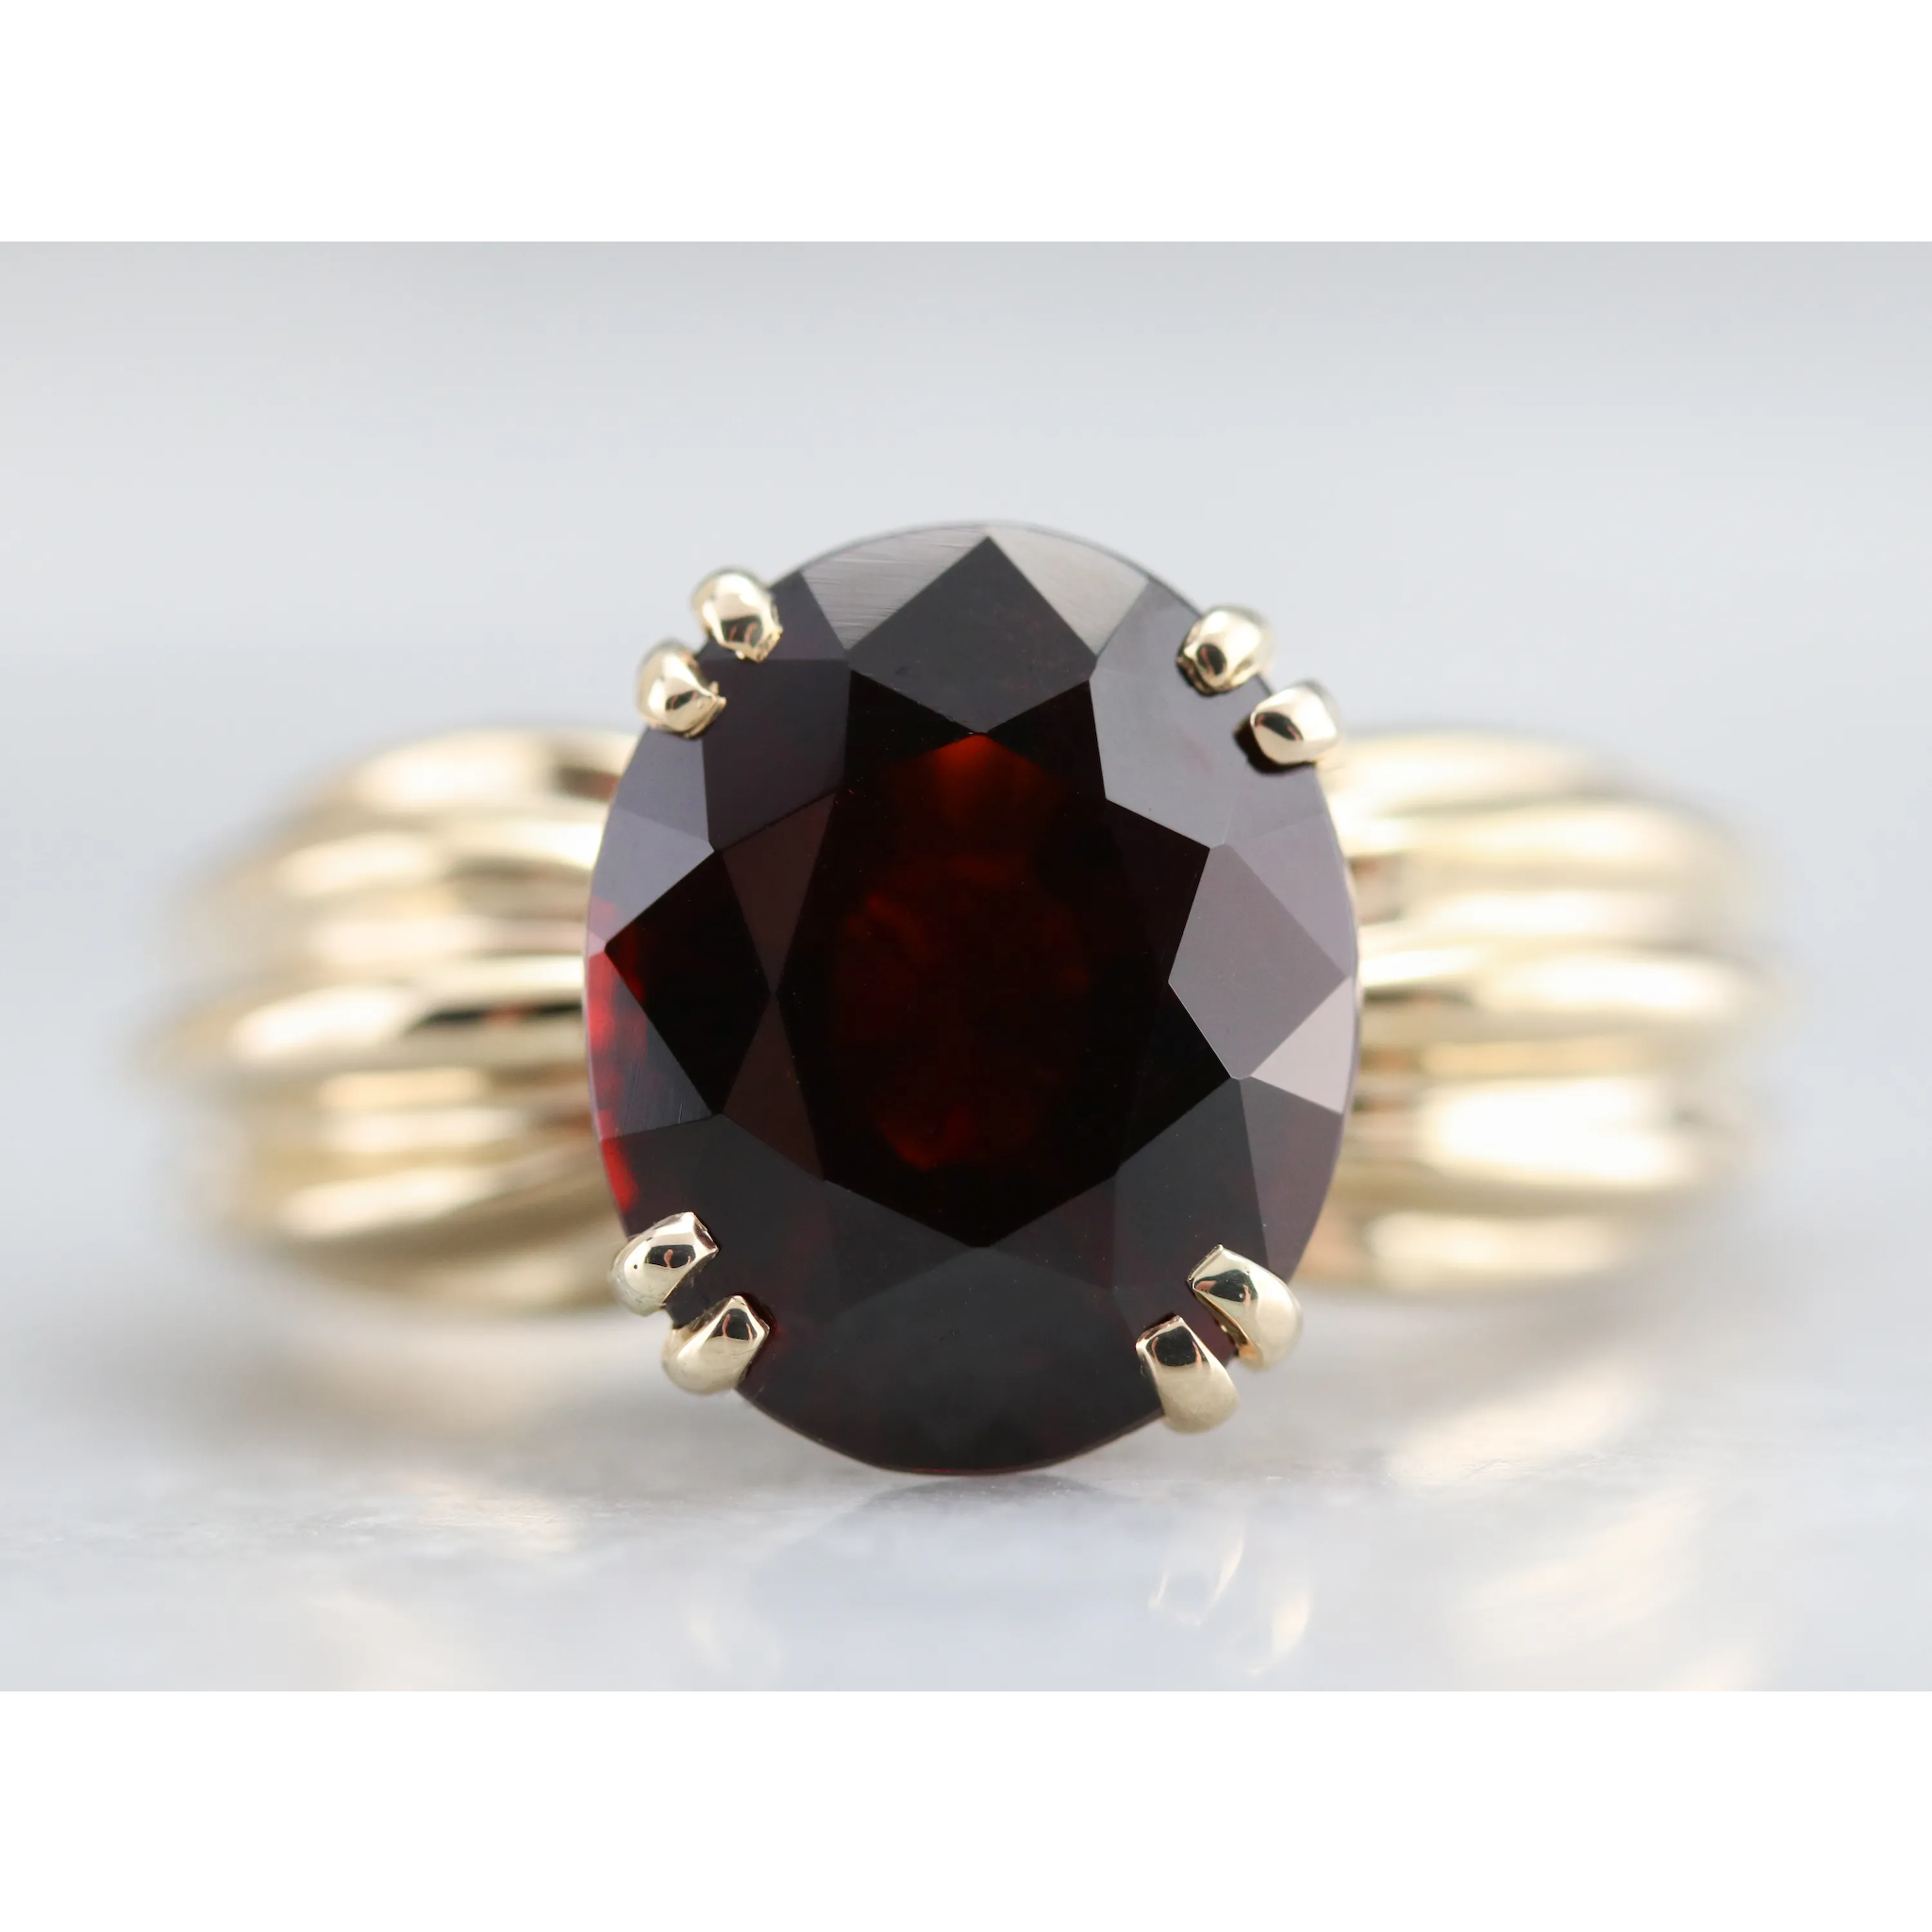 1980s Garnet Cocktail Ring is part of Cocktail rings, Vintage cocktail ring, Garnet, Vintage jewelry, Estate jewelry, Rings - Perfect in size and style, this garnet is a true cranberry red! Sparkling with winehued fire, the center stone is perfectly sized to be worn every day  Doubled prongs of polished 10 karat gold both secure the stone and give it a classical frame! Metal 10 Karat Yellow Gold Gem Garnet 4 79 Carats Gem Measurements 11 7 x 9 7 mm, Oval Ring Size 7 This item has been acid tested in our shop to assure the quality of the metal  Each item has been identified and graded by a Graduate Gemologist, we have four brick and mortar storefronts in Massachusetts, Maine, and New Hampshire and have been in business for over 25 years!